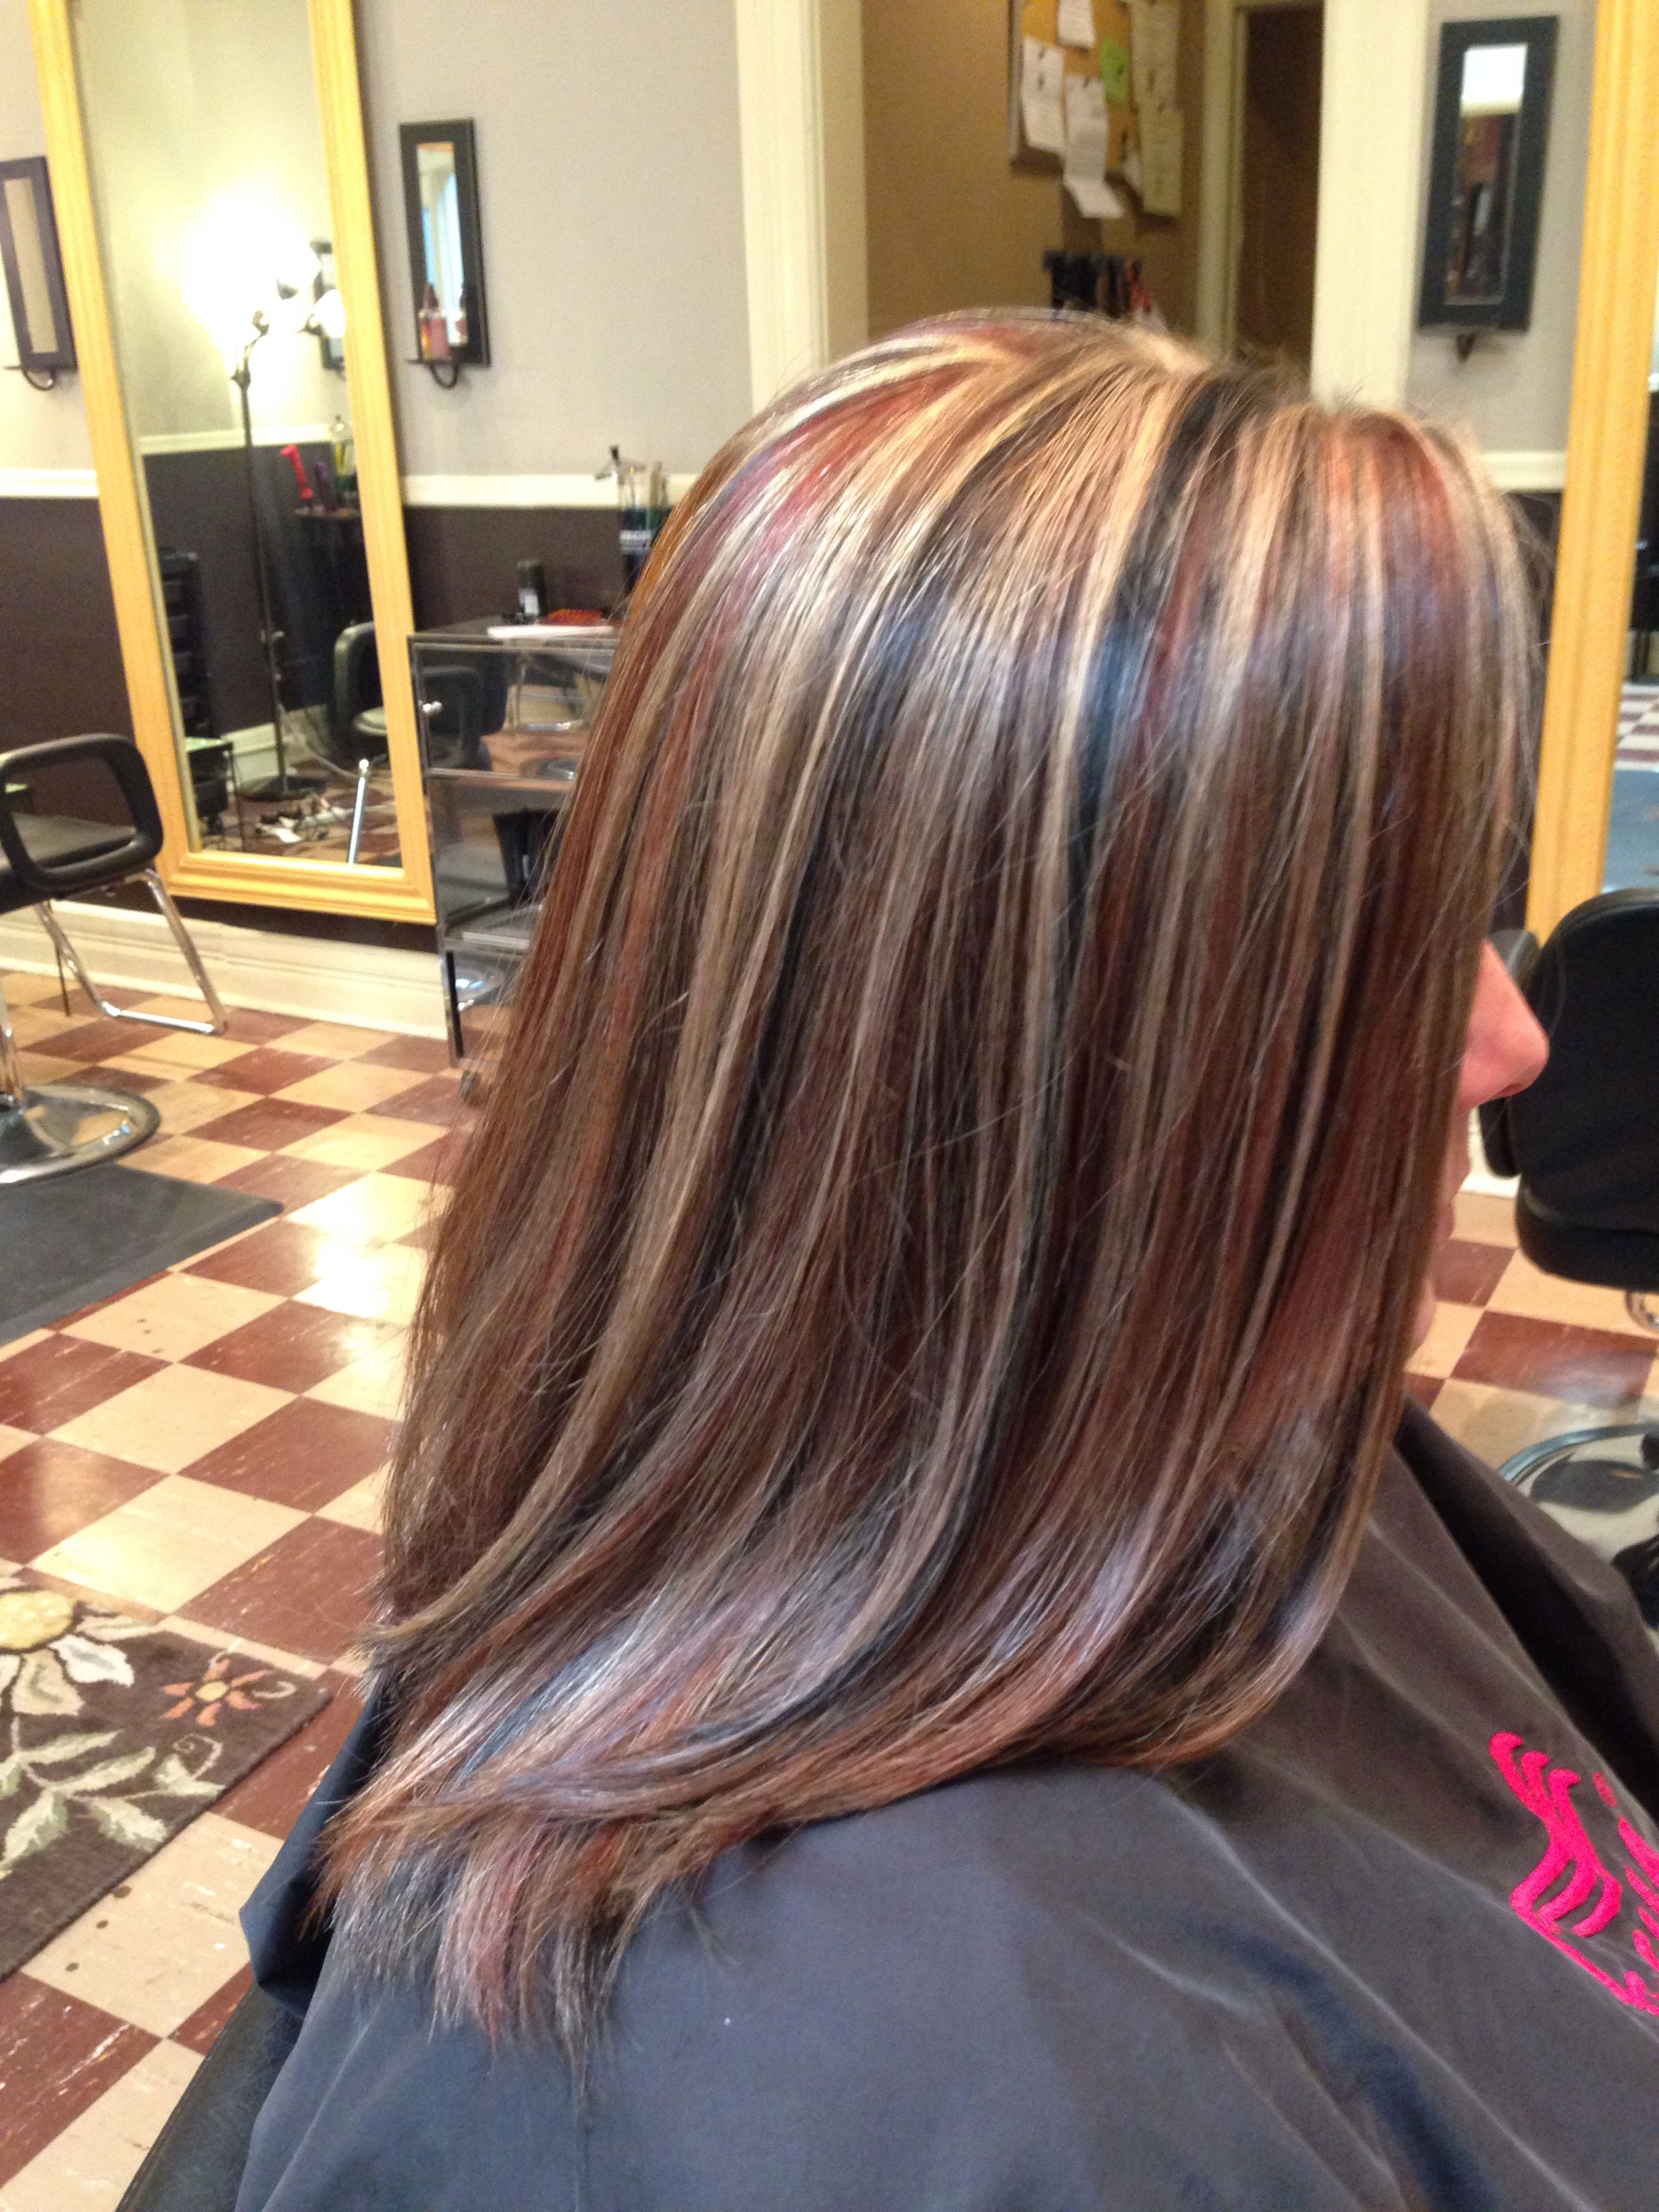 Highlight Lowlight Dimensional With Blonde Black And Red Inspired By Kelly Clarkson Hair Highlights Hair Styles Blonde Hair Color